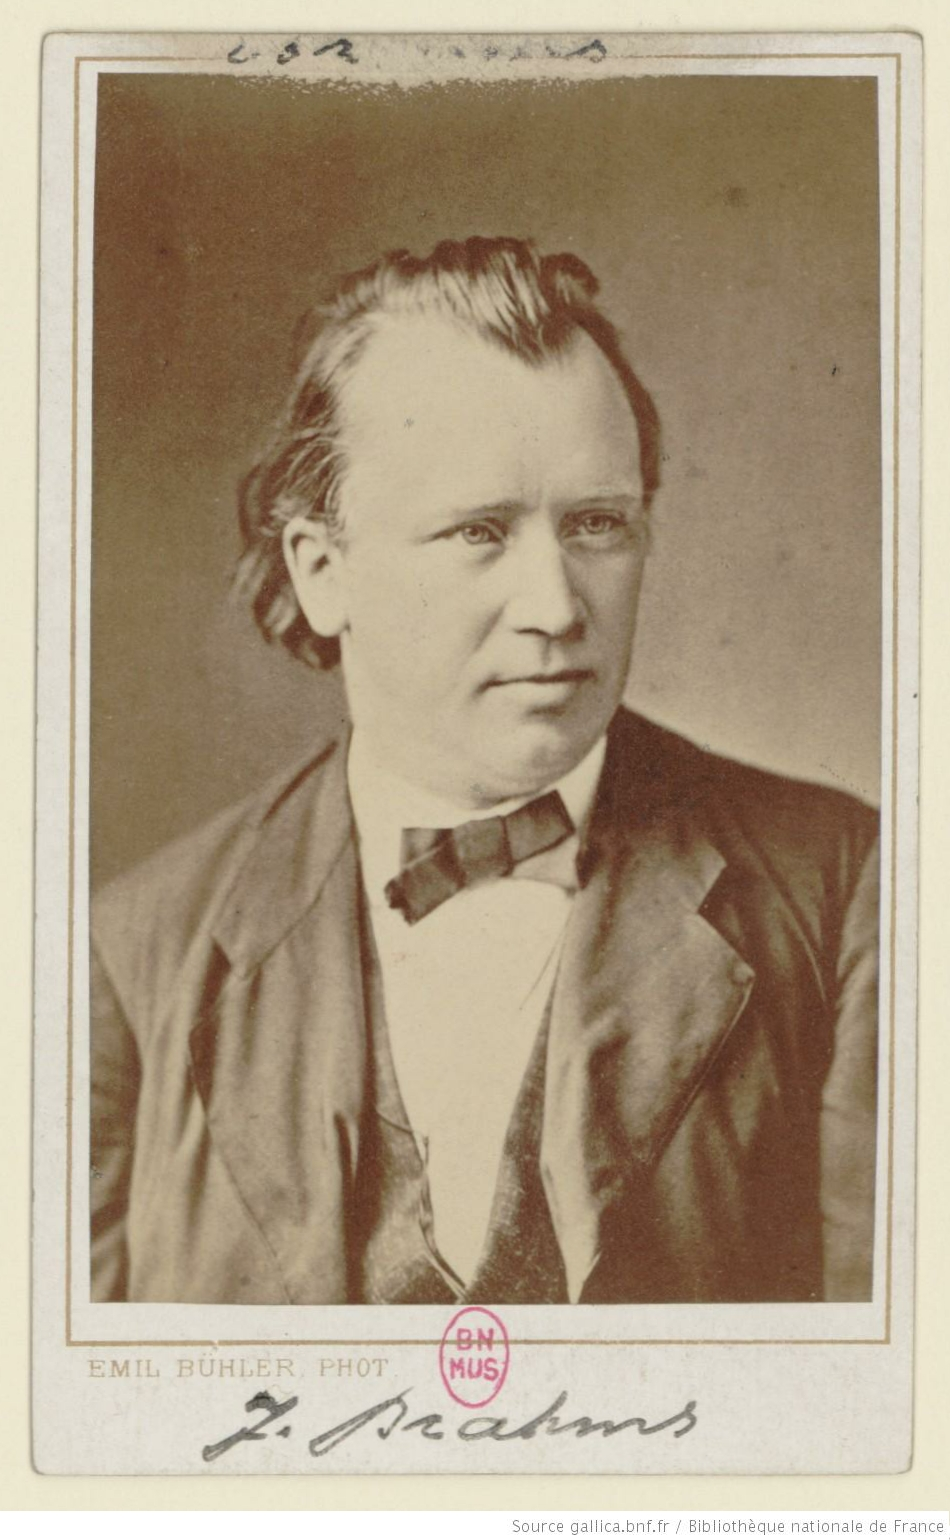 Johannes Brahms / Emil Bühler, Mannheim, Photographe, Date d'édition: 1875, Identifiant: ark:/12148/btv1b8416006p, Source: Bibliothèque nationale de France, département Musique, Est. Brahms 002 bis, Relation catalogue: http://catalogue.bnf.fr/ark:/12148/cb39602908c, relation photo: http://gallica.bnf.fr/ark:/12148/btv1b8416006p.r=%22Johannes+Brahms%22.langFR